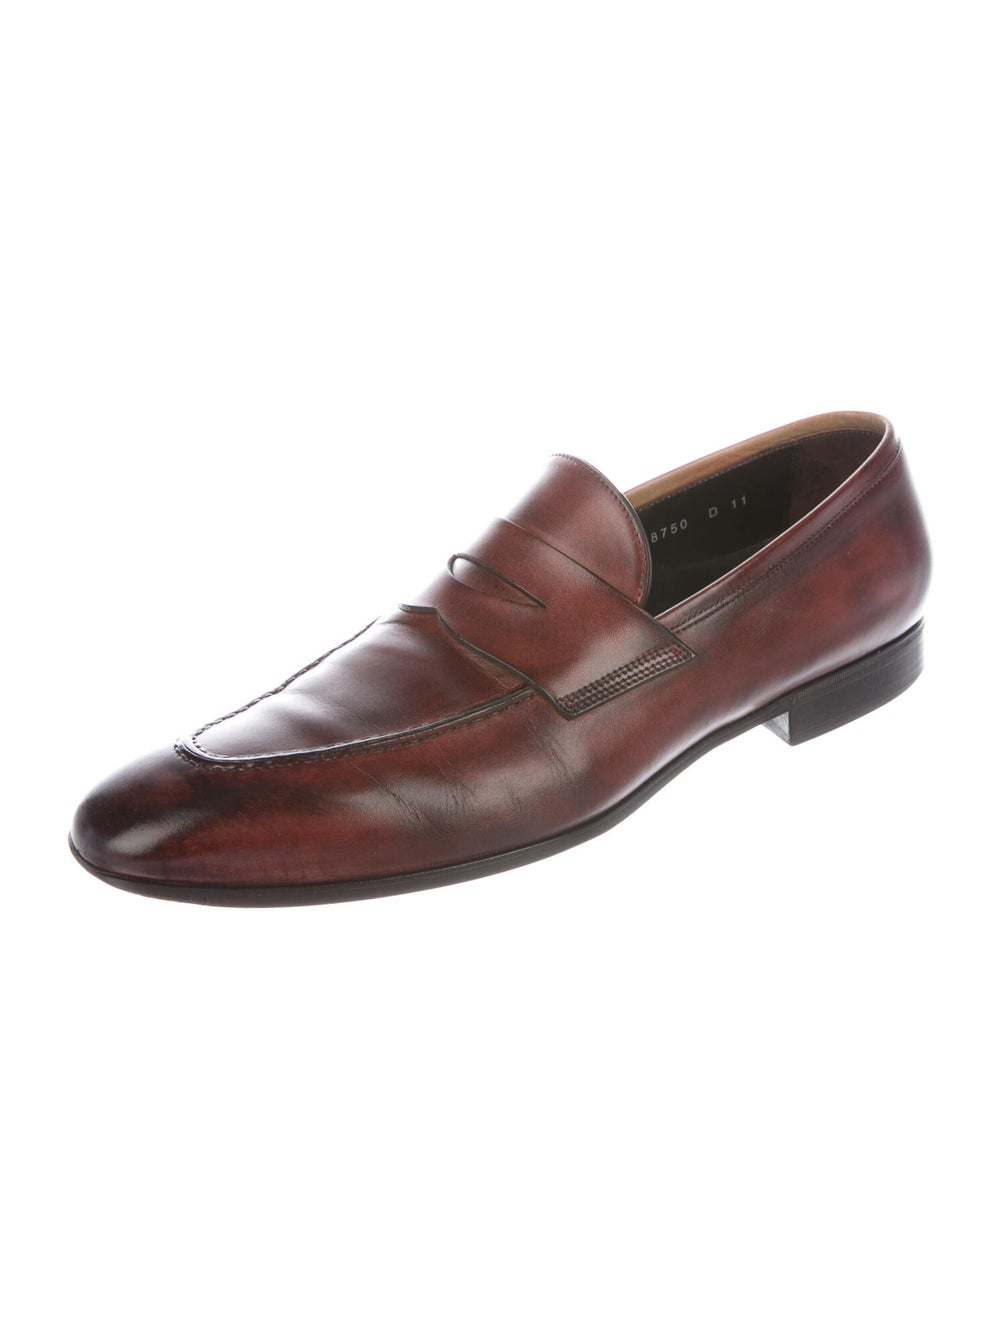 Santoni Leather Penny Loafers brown - image 2